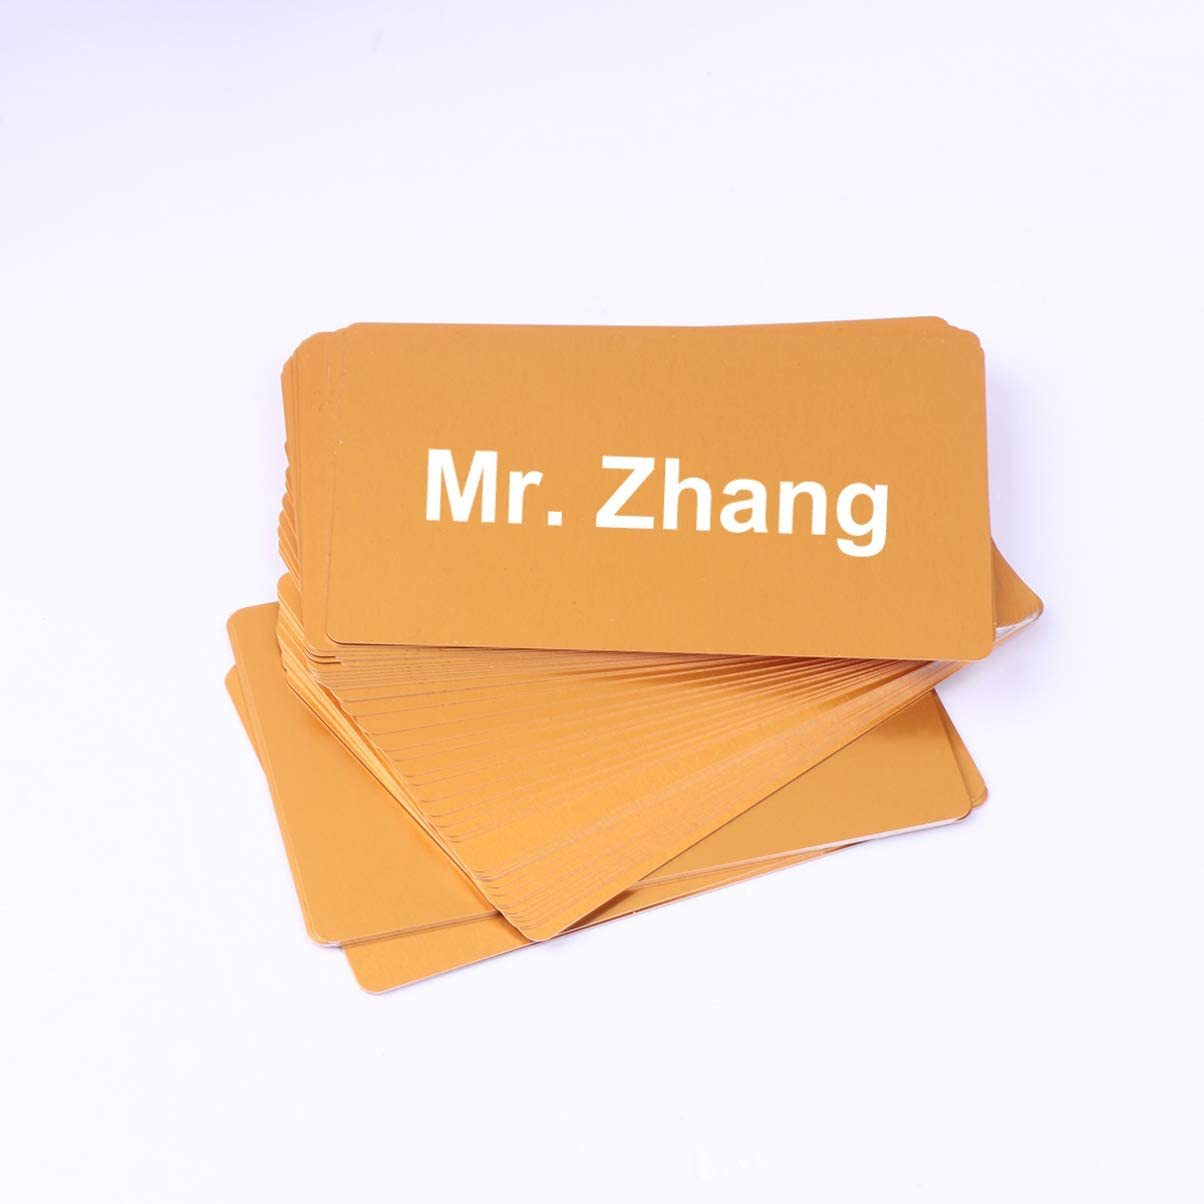 HEALLILY Red Metal Business Cards Blanks Aluminum Plaque Plate for Customer Engraving Sublimation Print DIY Gift Cards 50 Pcs